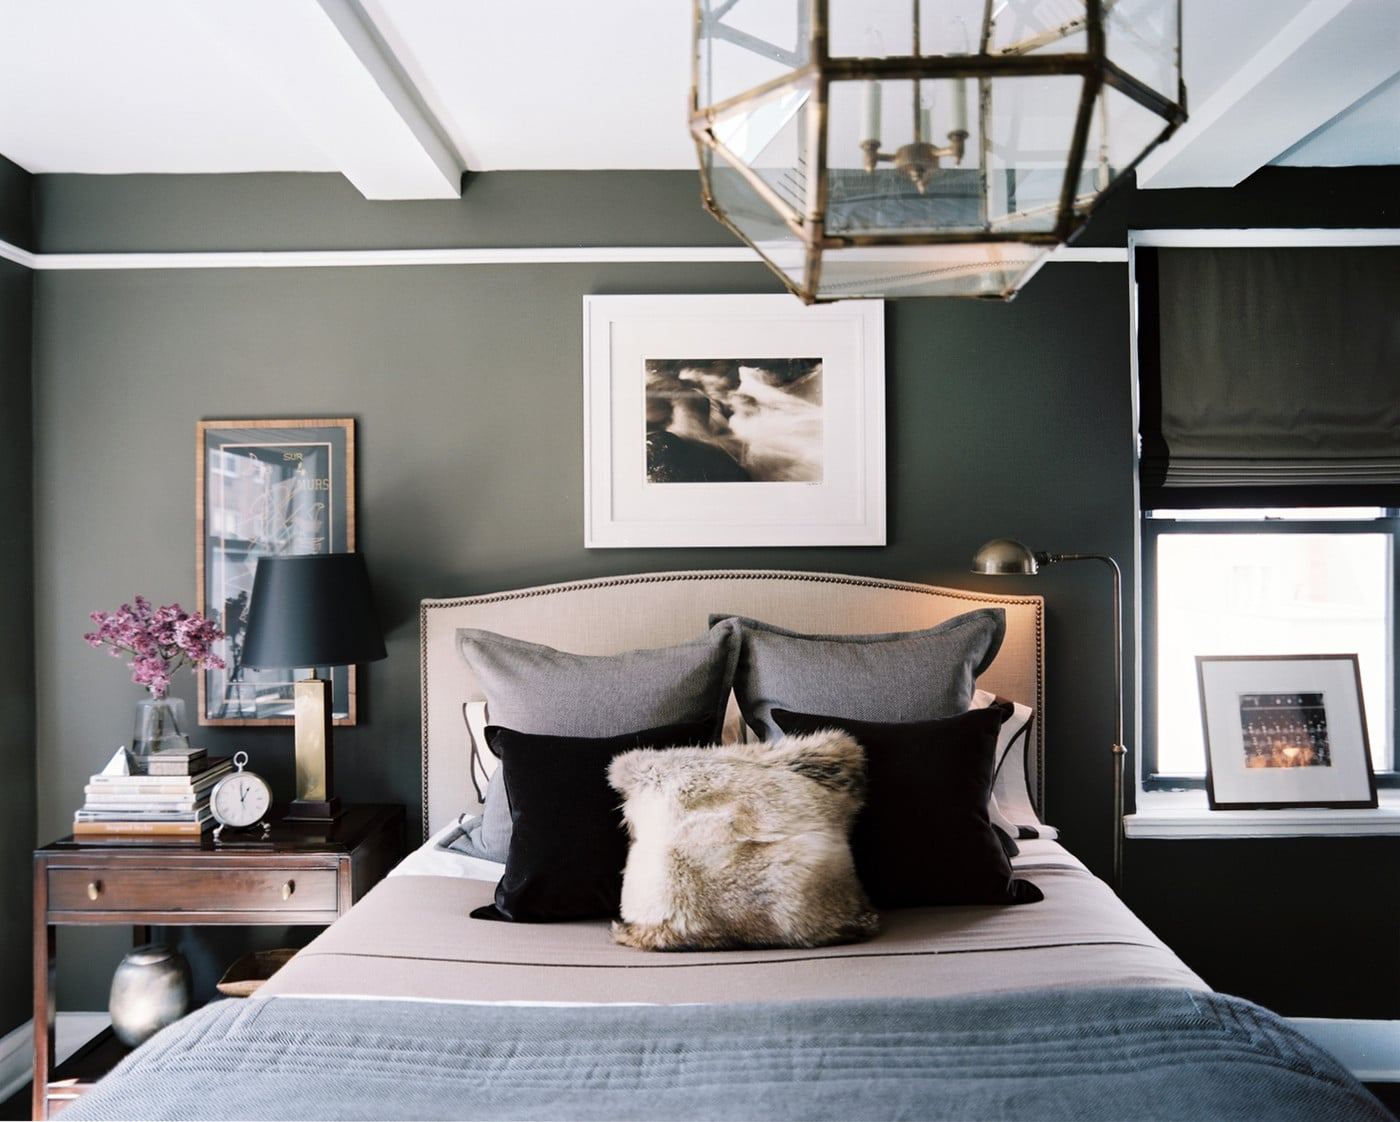 7 Essentials for the Coziest Winter Home